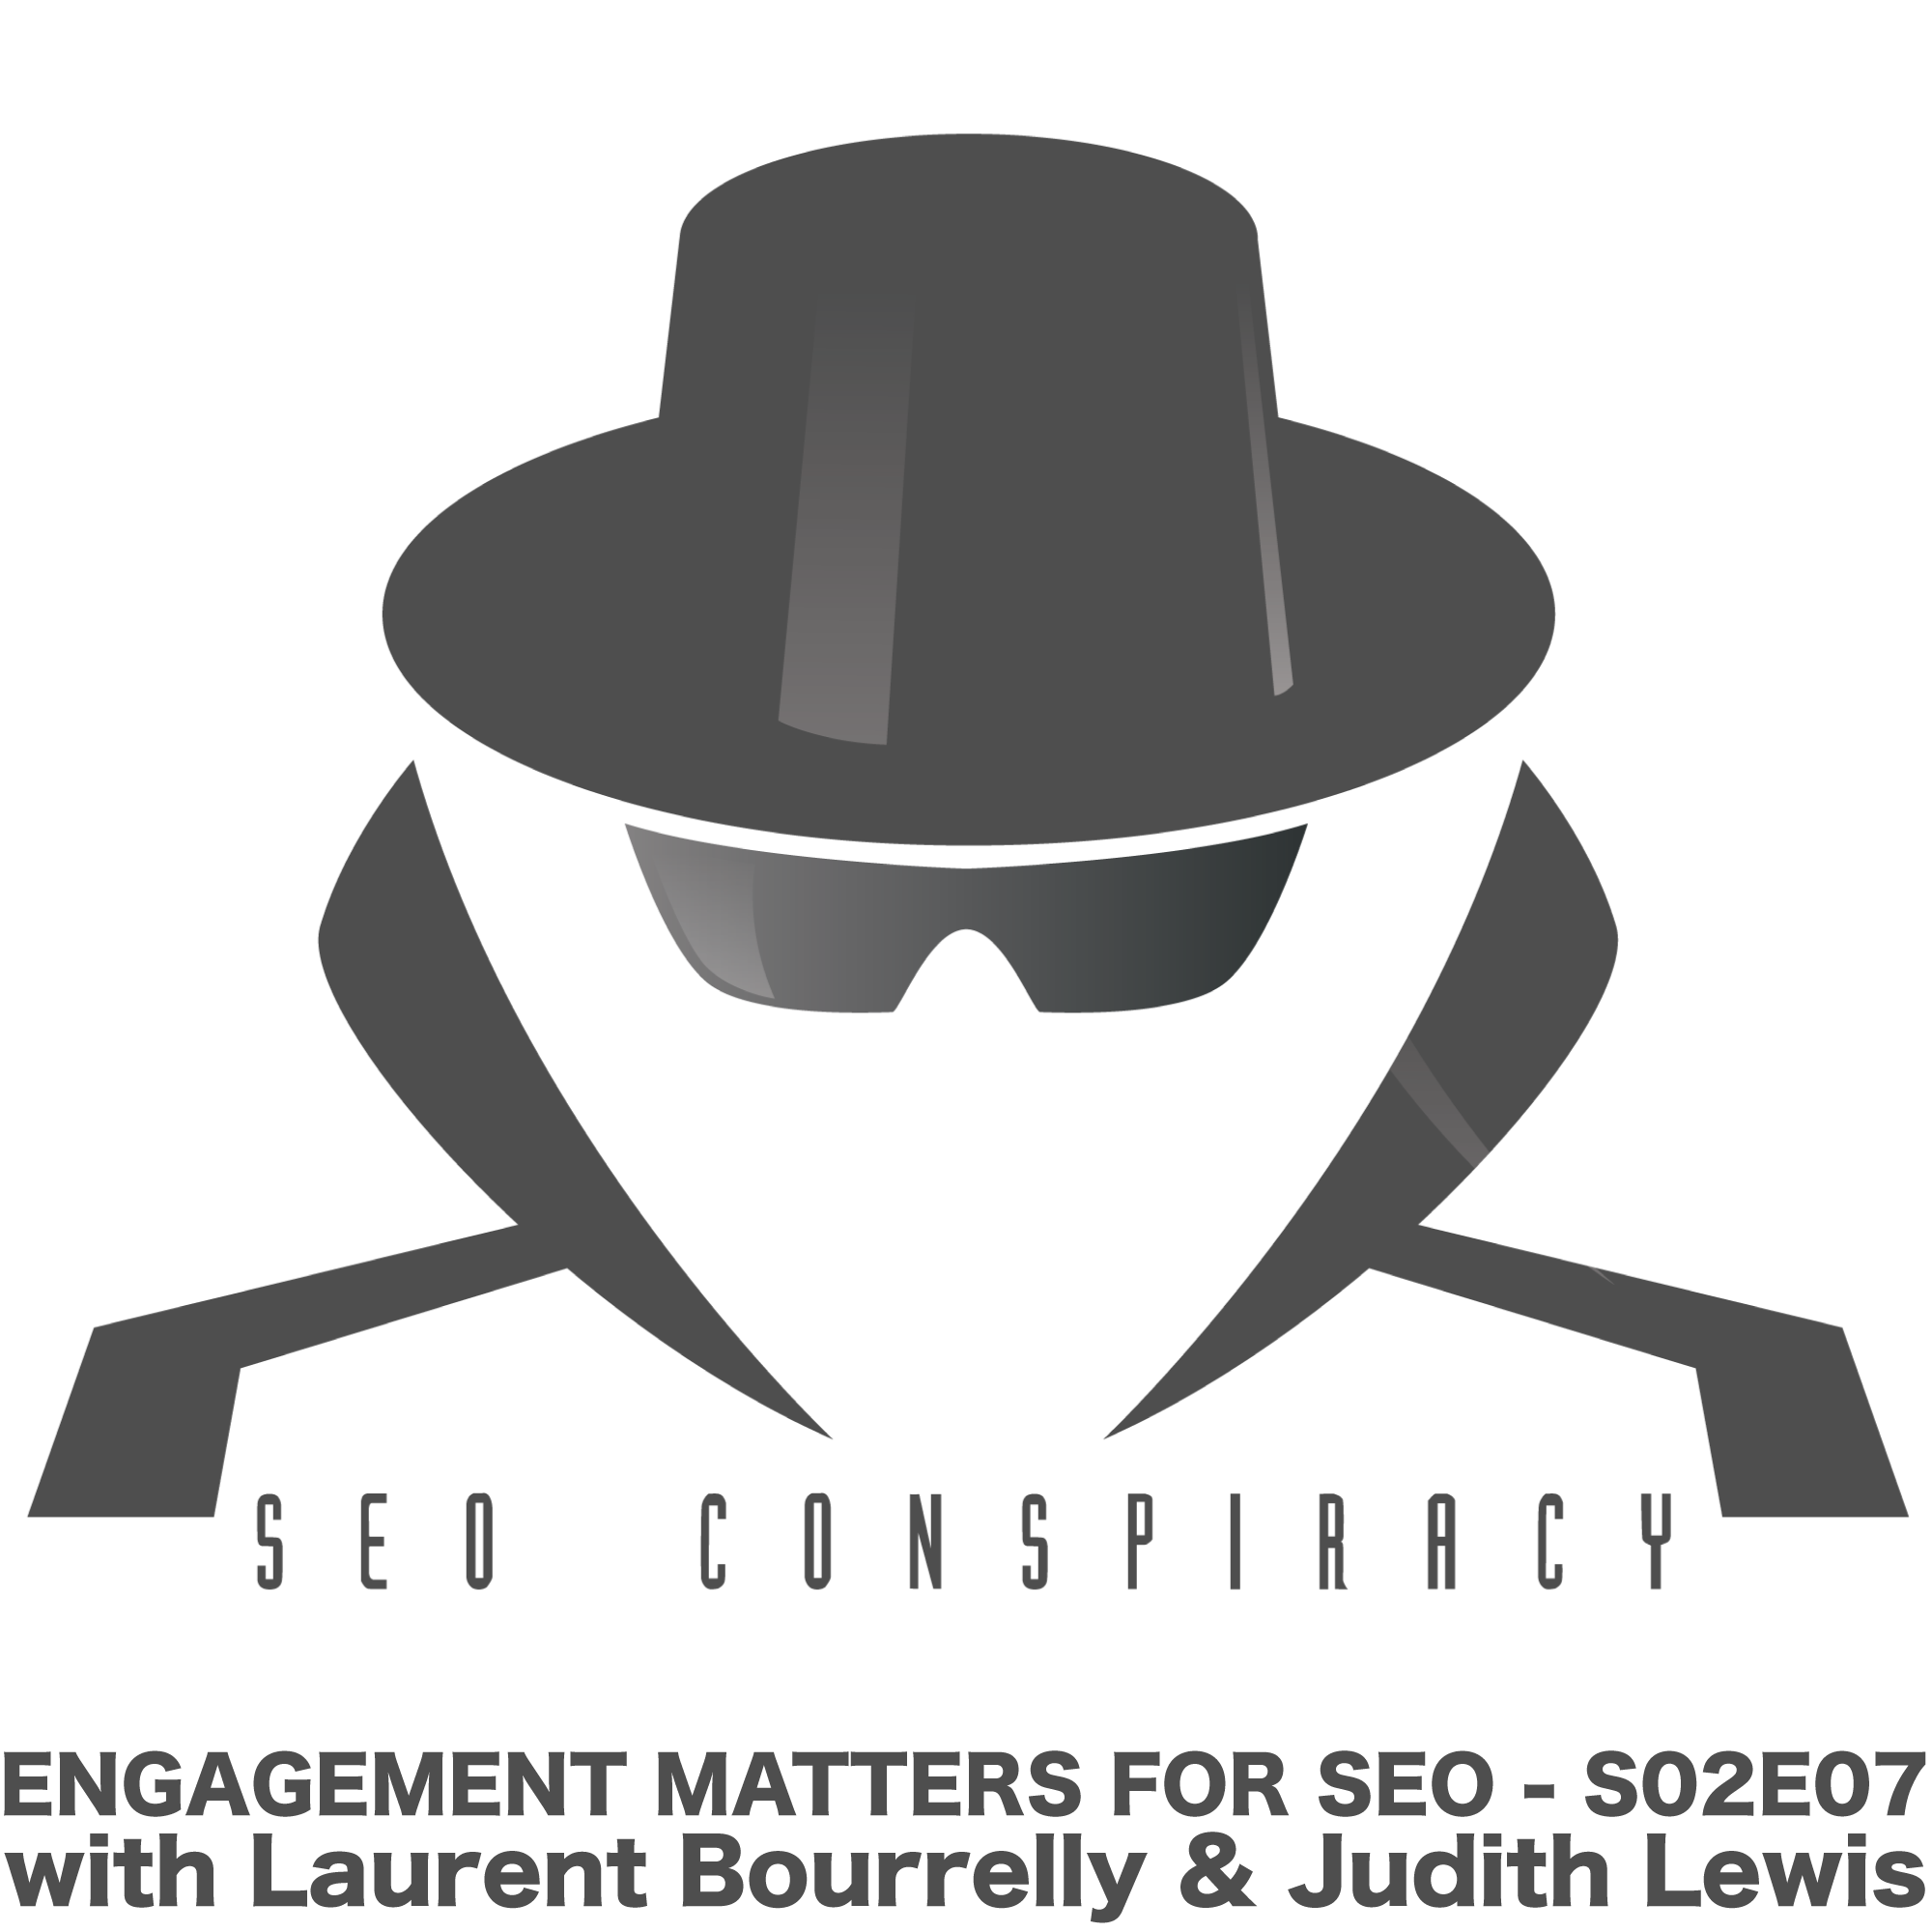 Engagement is the most under rated SEO asset in 2021 - S02E07